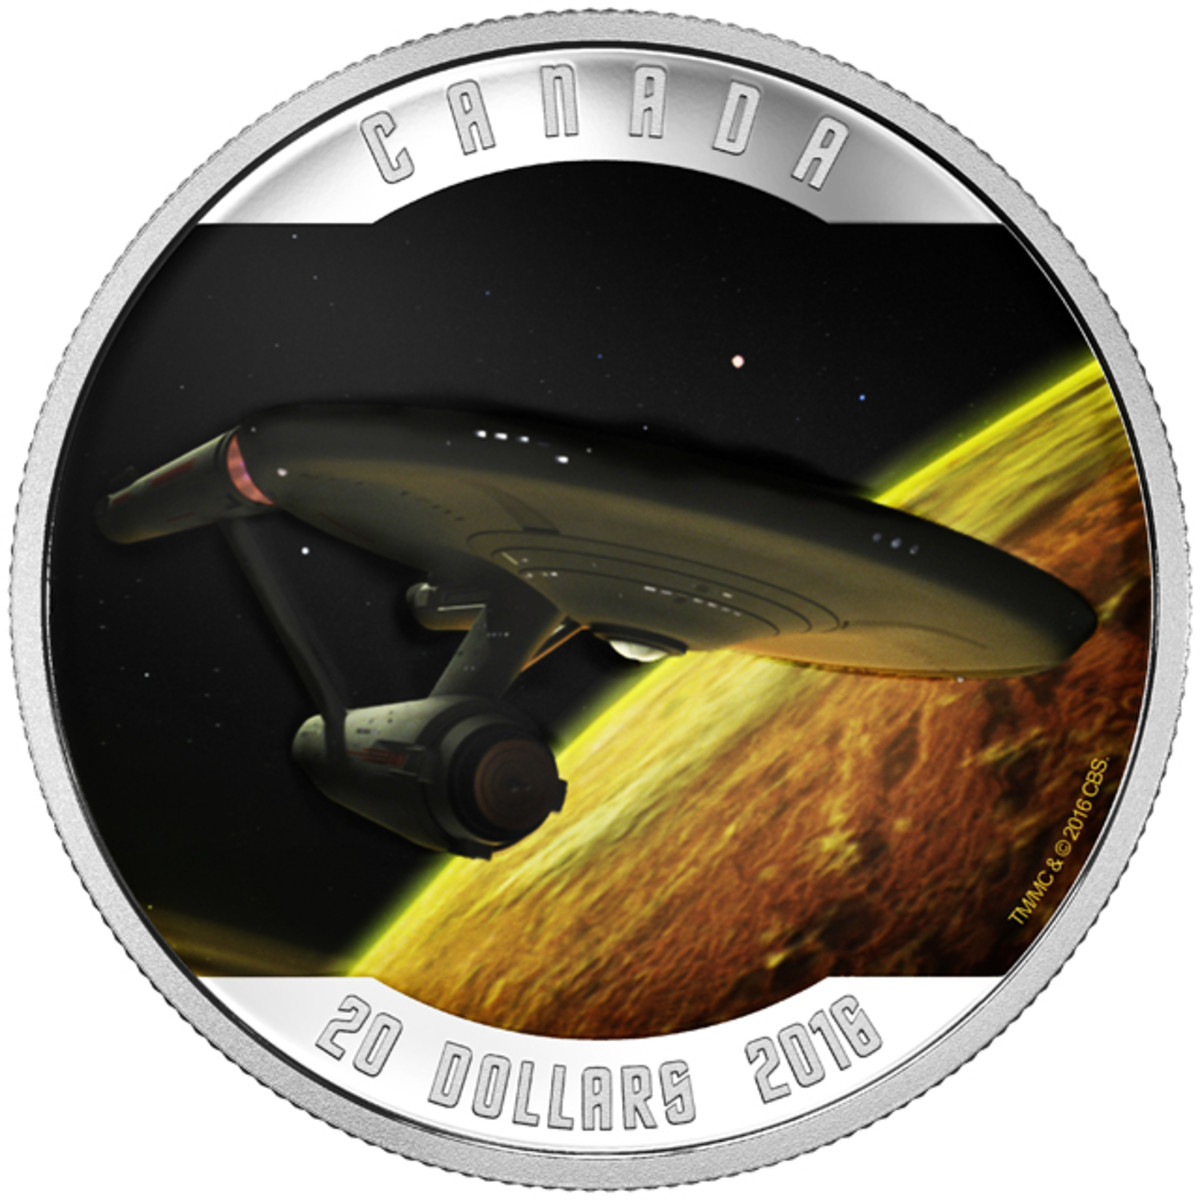 The U.S.S. Enterprise approaches a Class K planet on the reverse of this silver $20 Canadian proof. Image courtesy RCM. TM & © 2016 CBS Studios Inc. STAR TREK and related marks and logos are trademarks of CBS Studios Inc. All Rights Reserved.